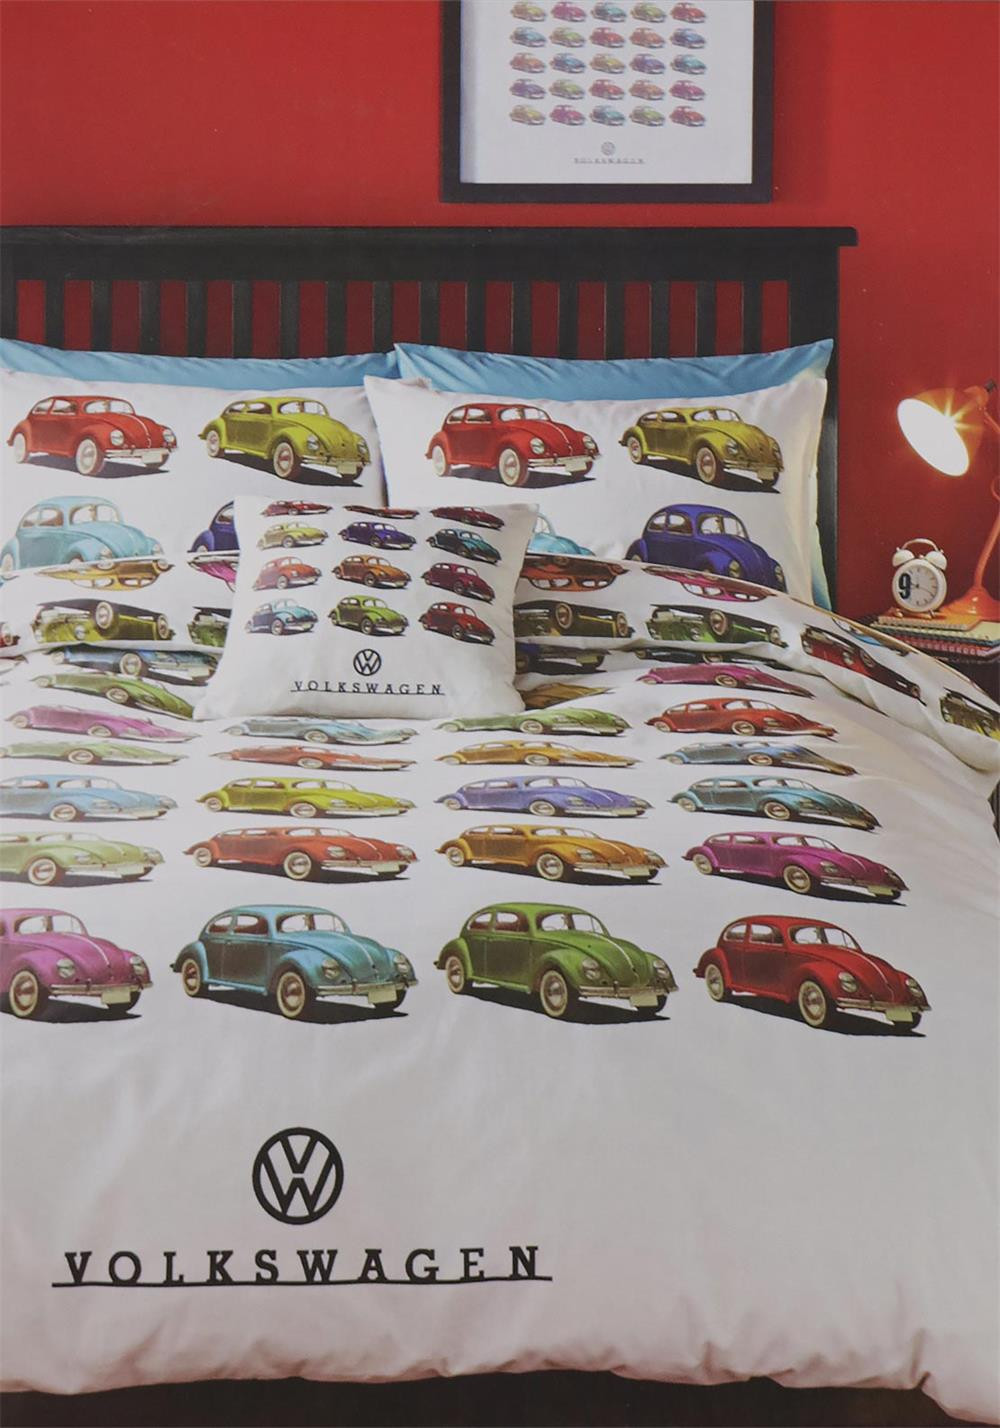 Ashley Wilde Volskwagen Beetles Duvet Cover Set, Multi-Coloured